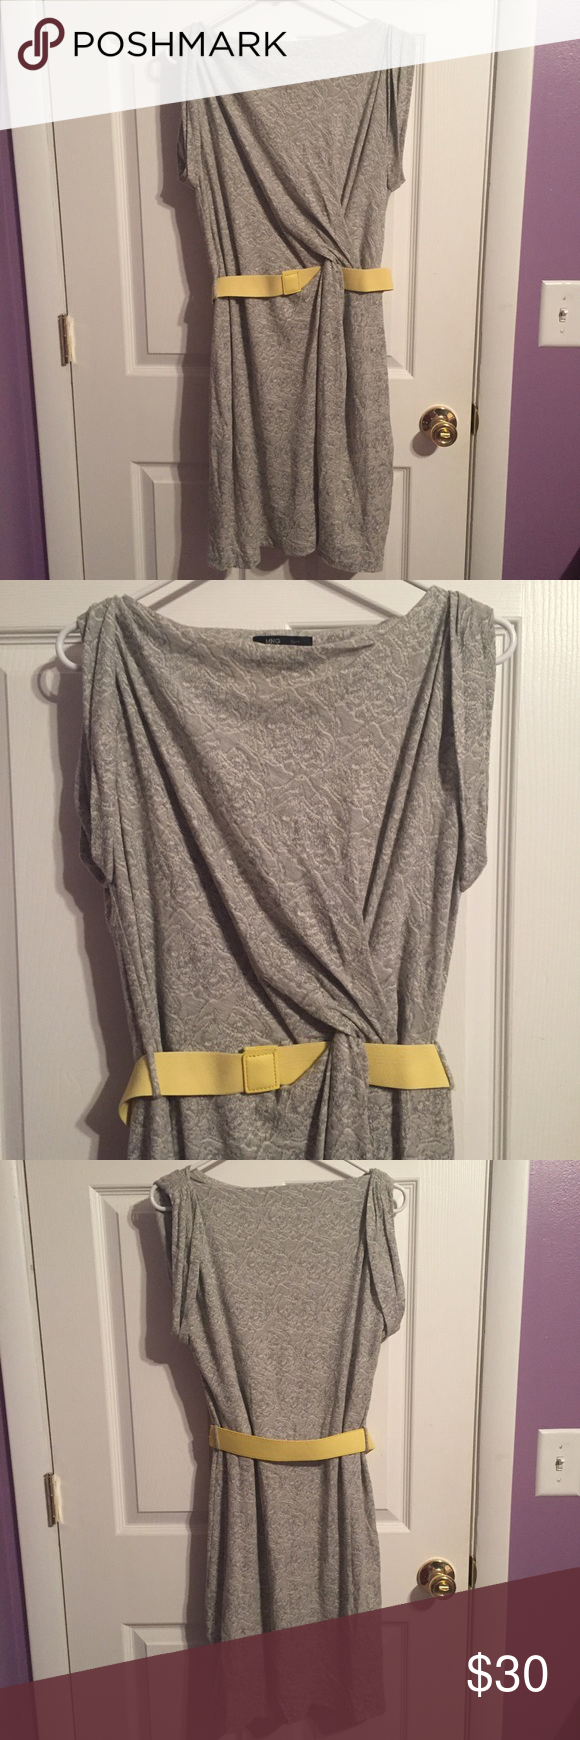 Ming Grey Dress with Yellow Belt Perfect condition, only worn once. Only selling because it no longer fits. Very soft and comfortable to wear. Materials: 50% Cotton, 32% Polyester, 18% Viscose. The lining is 100% Polyester. 34 inches in length. Ends at the knee. Fits true to size, which is a Medium. Ming Dresses Midi